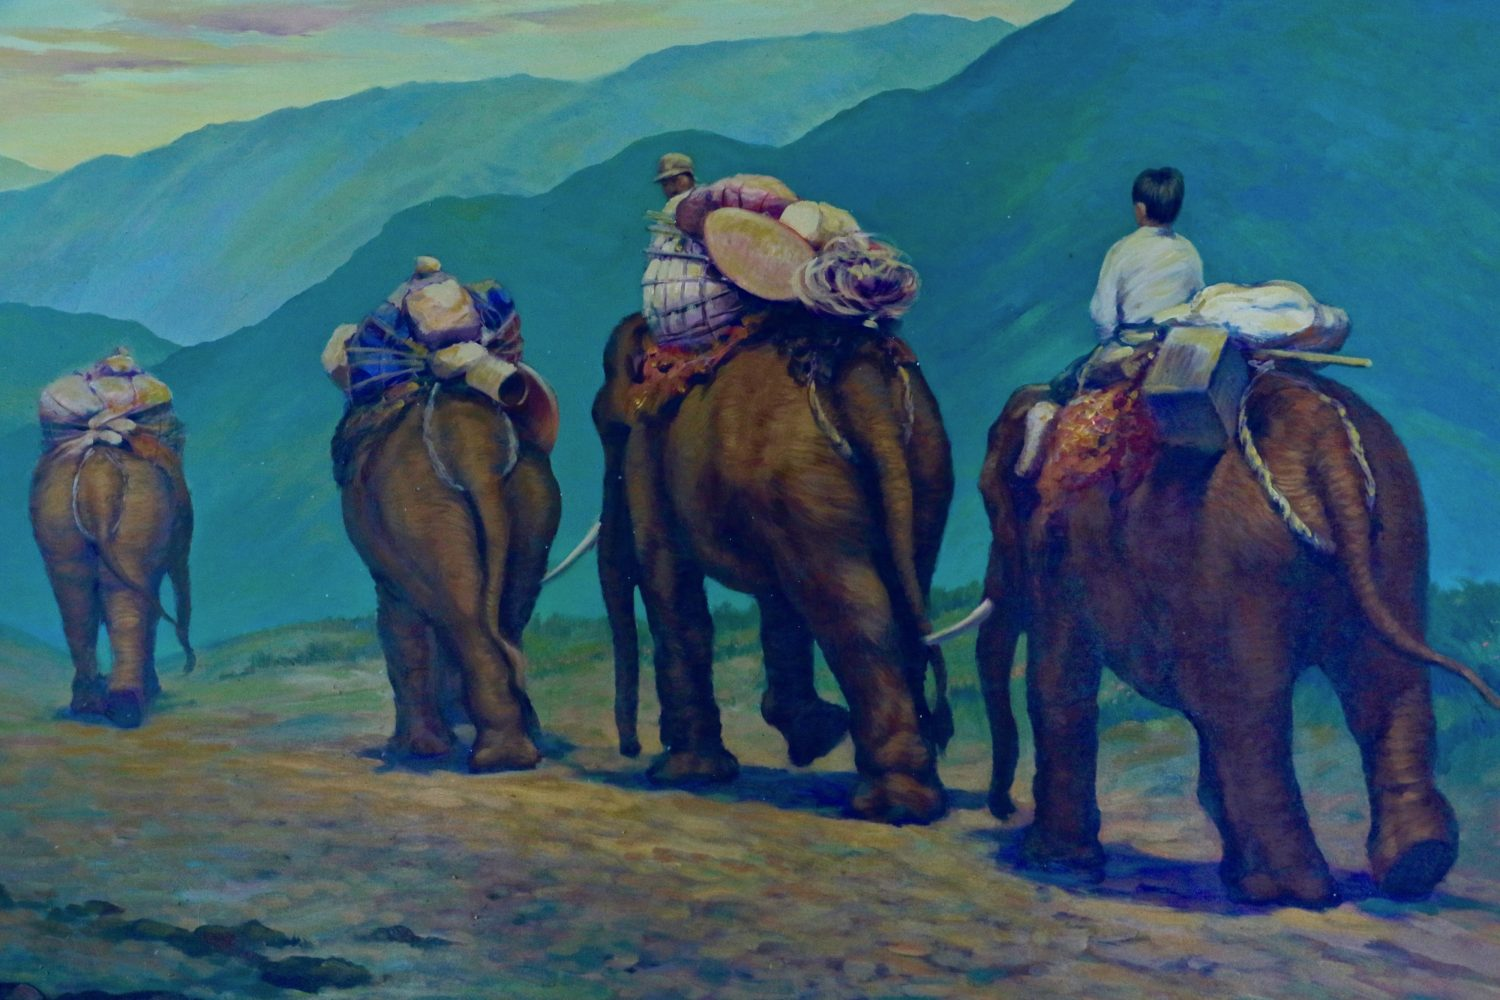 painting of people riding elephants in mountains